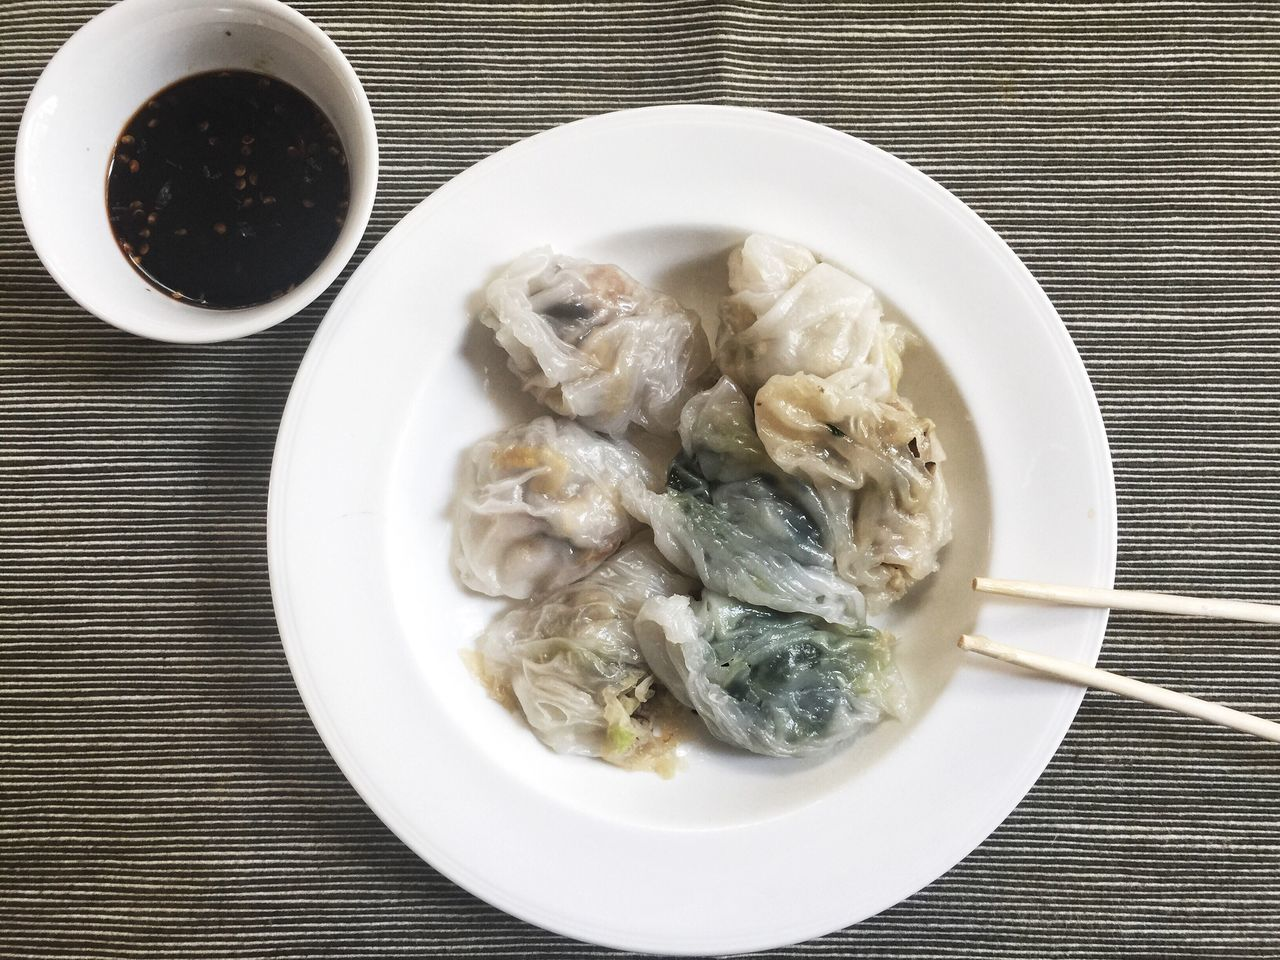 Appetizer of the day...Chinese chives dumpling Dumplings Chinese Dumplings Chinese Food Chinese Recipe Cuisine Chinese Cuisine Homemade Food Steamed Dumplings Served Hot Appitizer Ready-to-eat Delicious Tasty Foods Yummy Simply Delicious Bon Appétit! Traditional Food Dim Sum